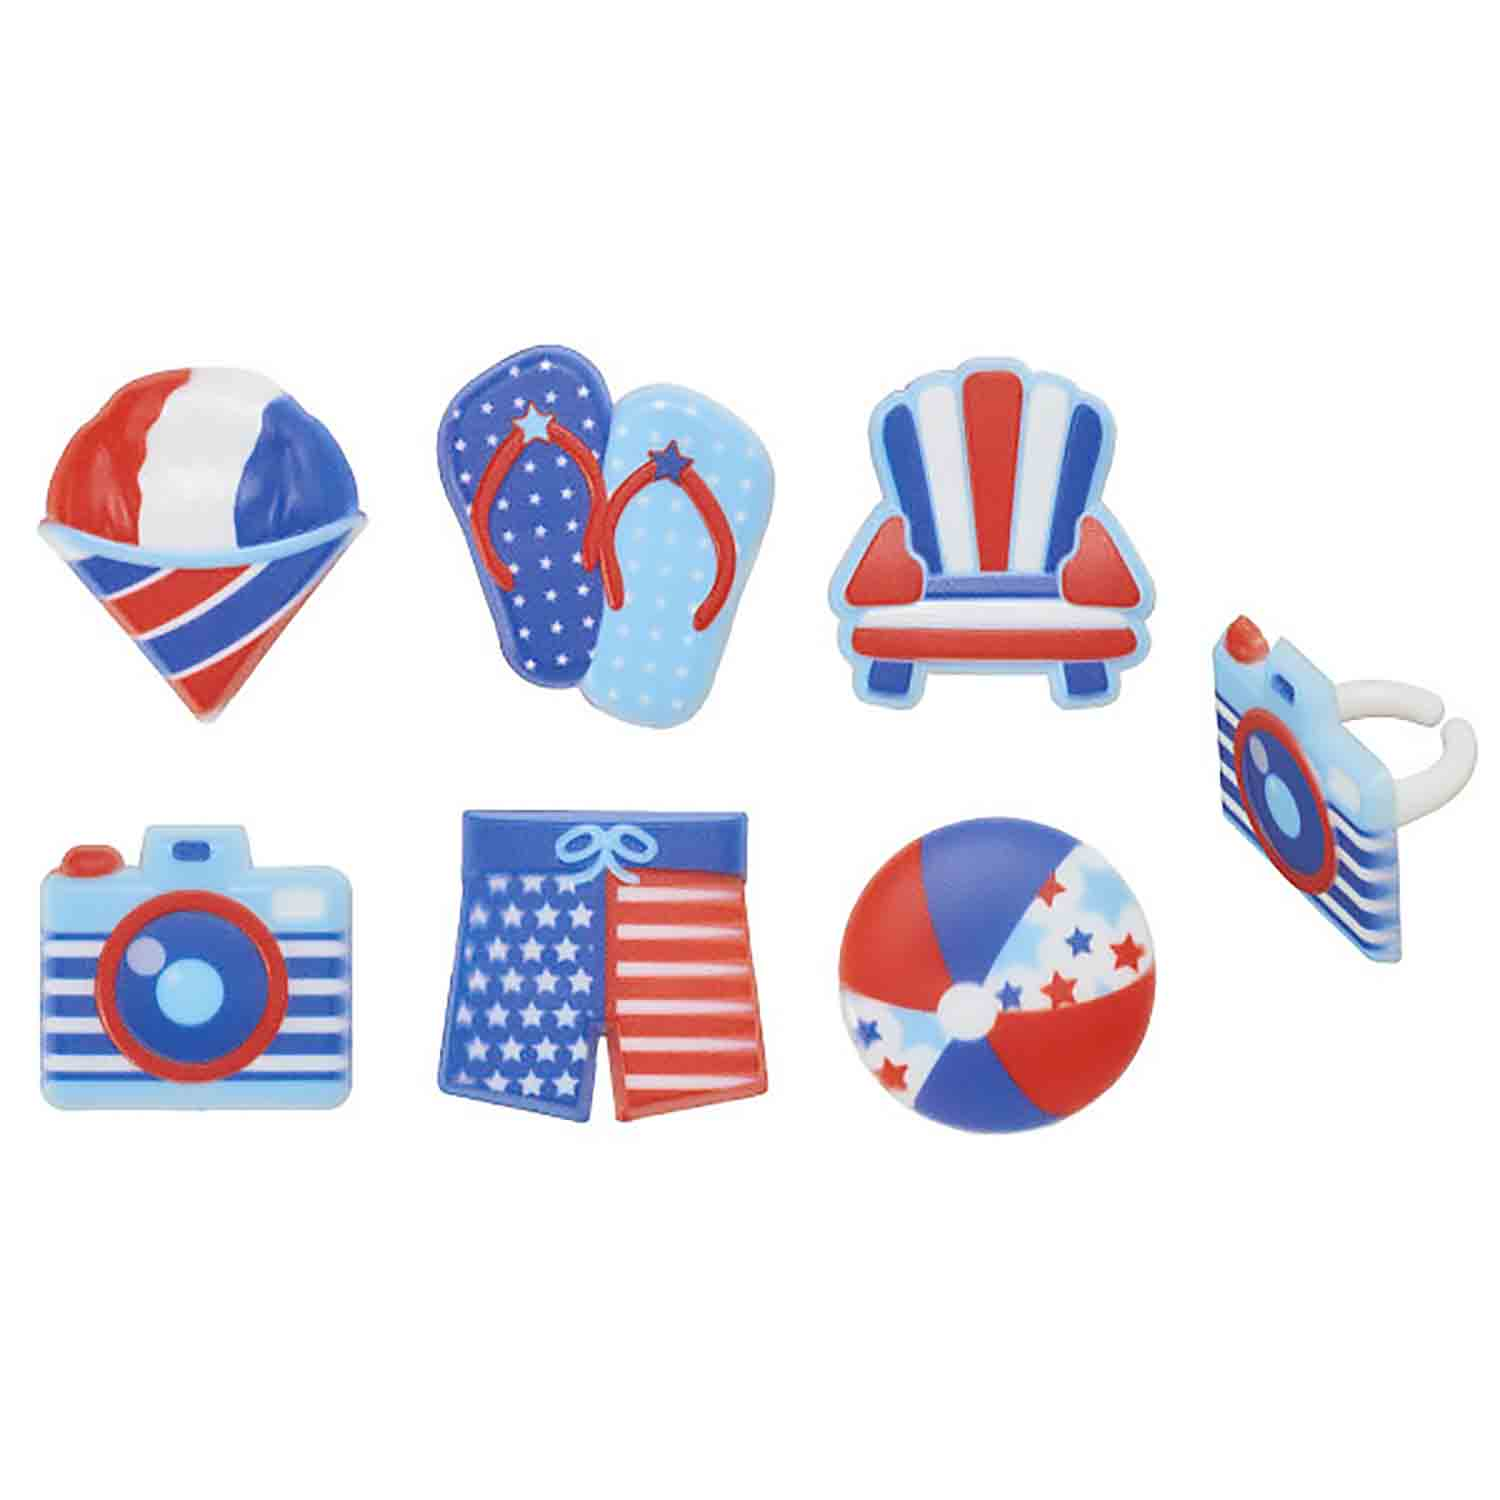 Patriotic Cake and Cupcake Toppers and Decorations